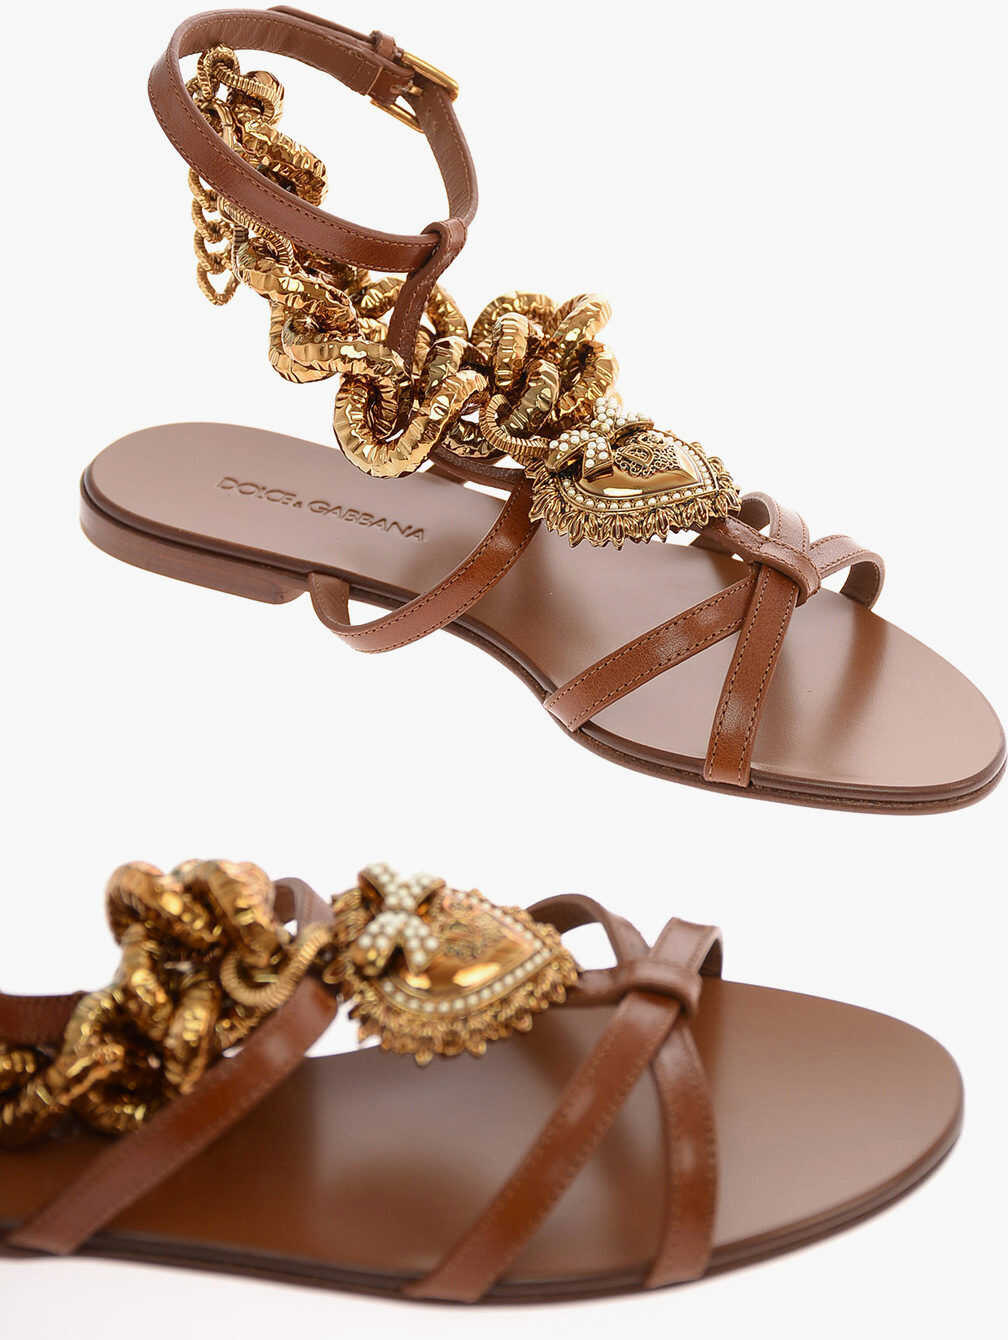 Dolce & Gabbana Leather DEVOTION Sandals with Chain BROWN imagine b-mall.ro